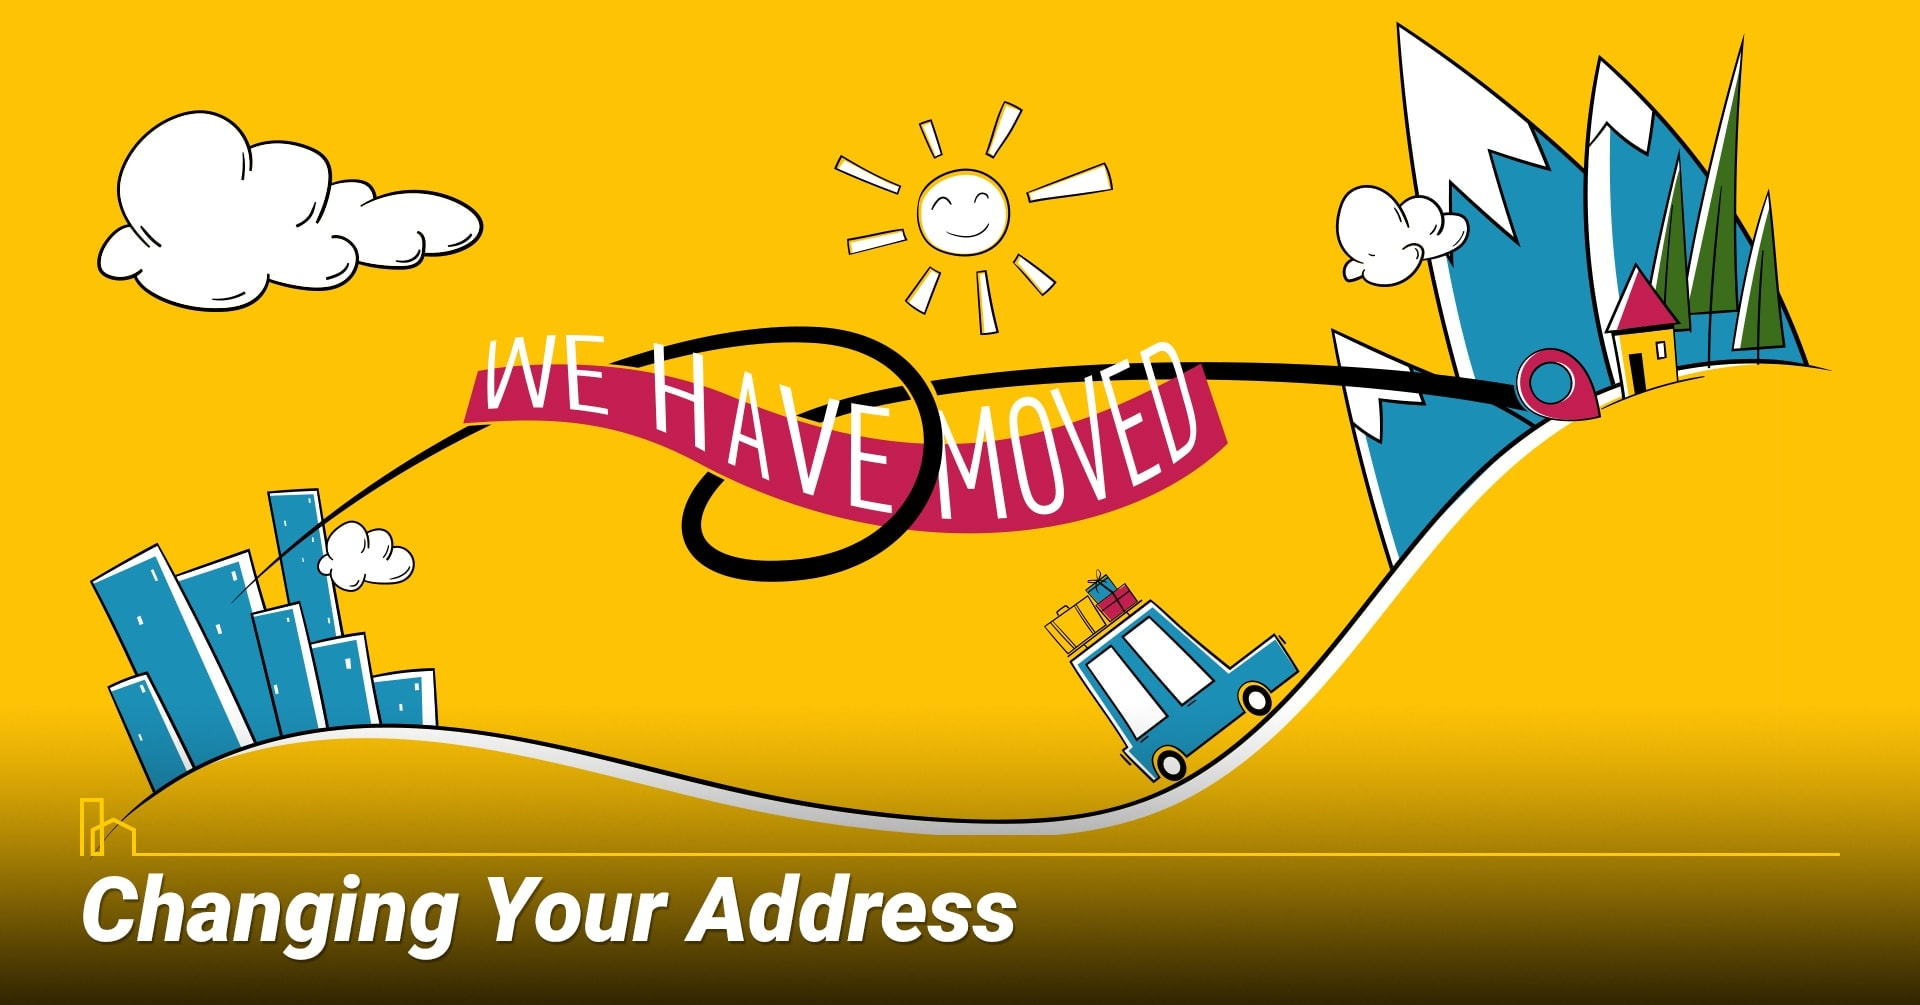 Changing Your Address, update your new mailing address